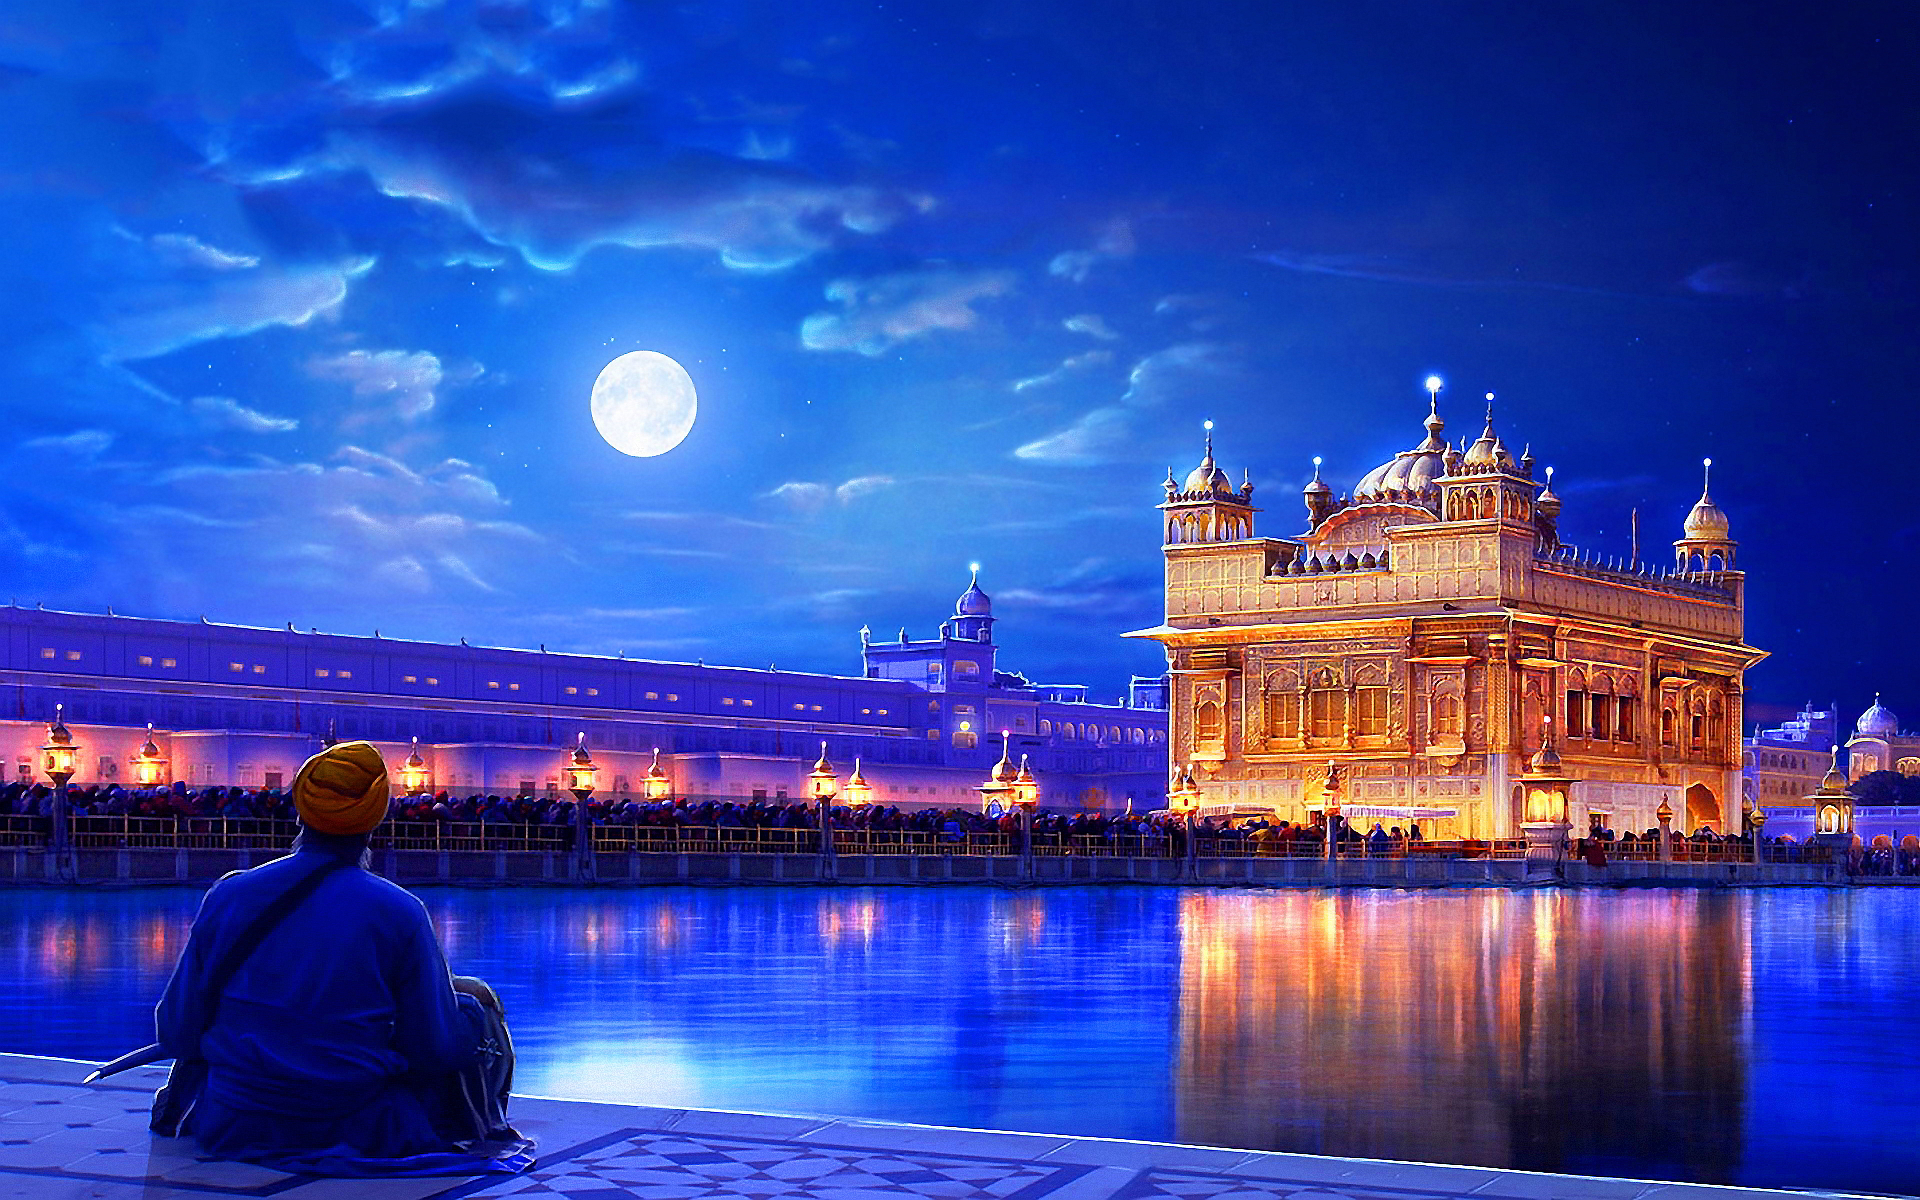 India wallpapers best wallpapers for India wallpaper 3d